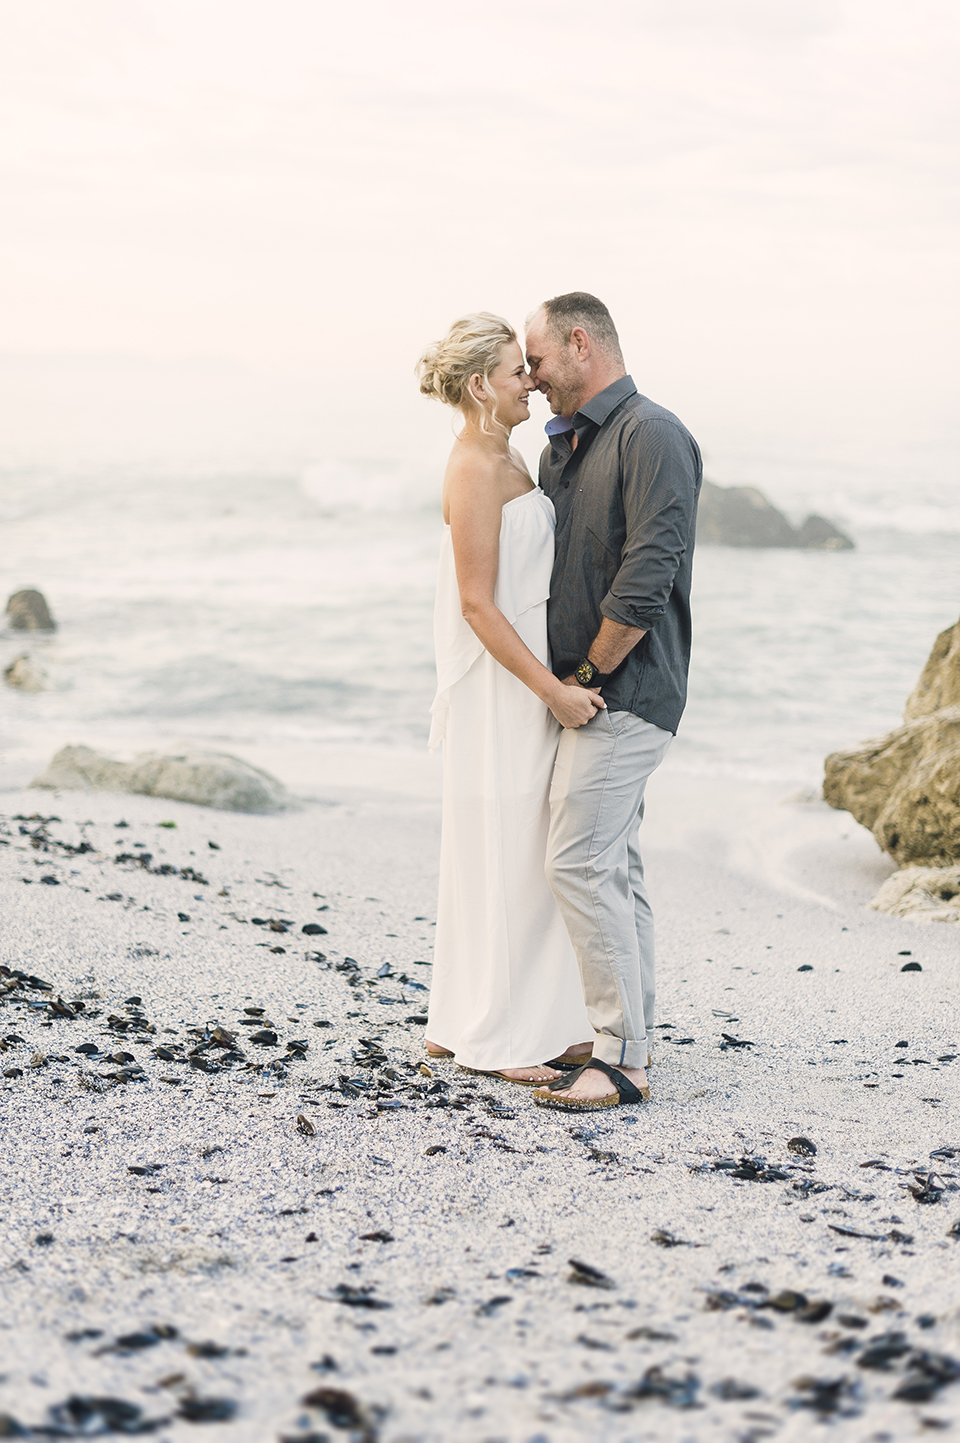 RyanParker_CapeTown_Photographer_Wedding_Hermanus_A&B_DSC_9134.jpg